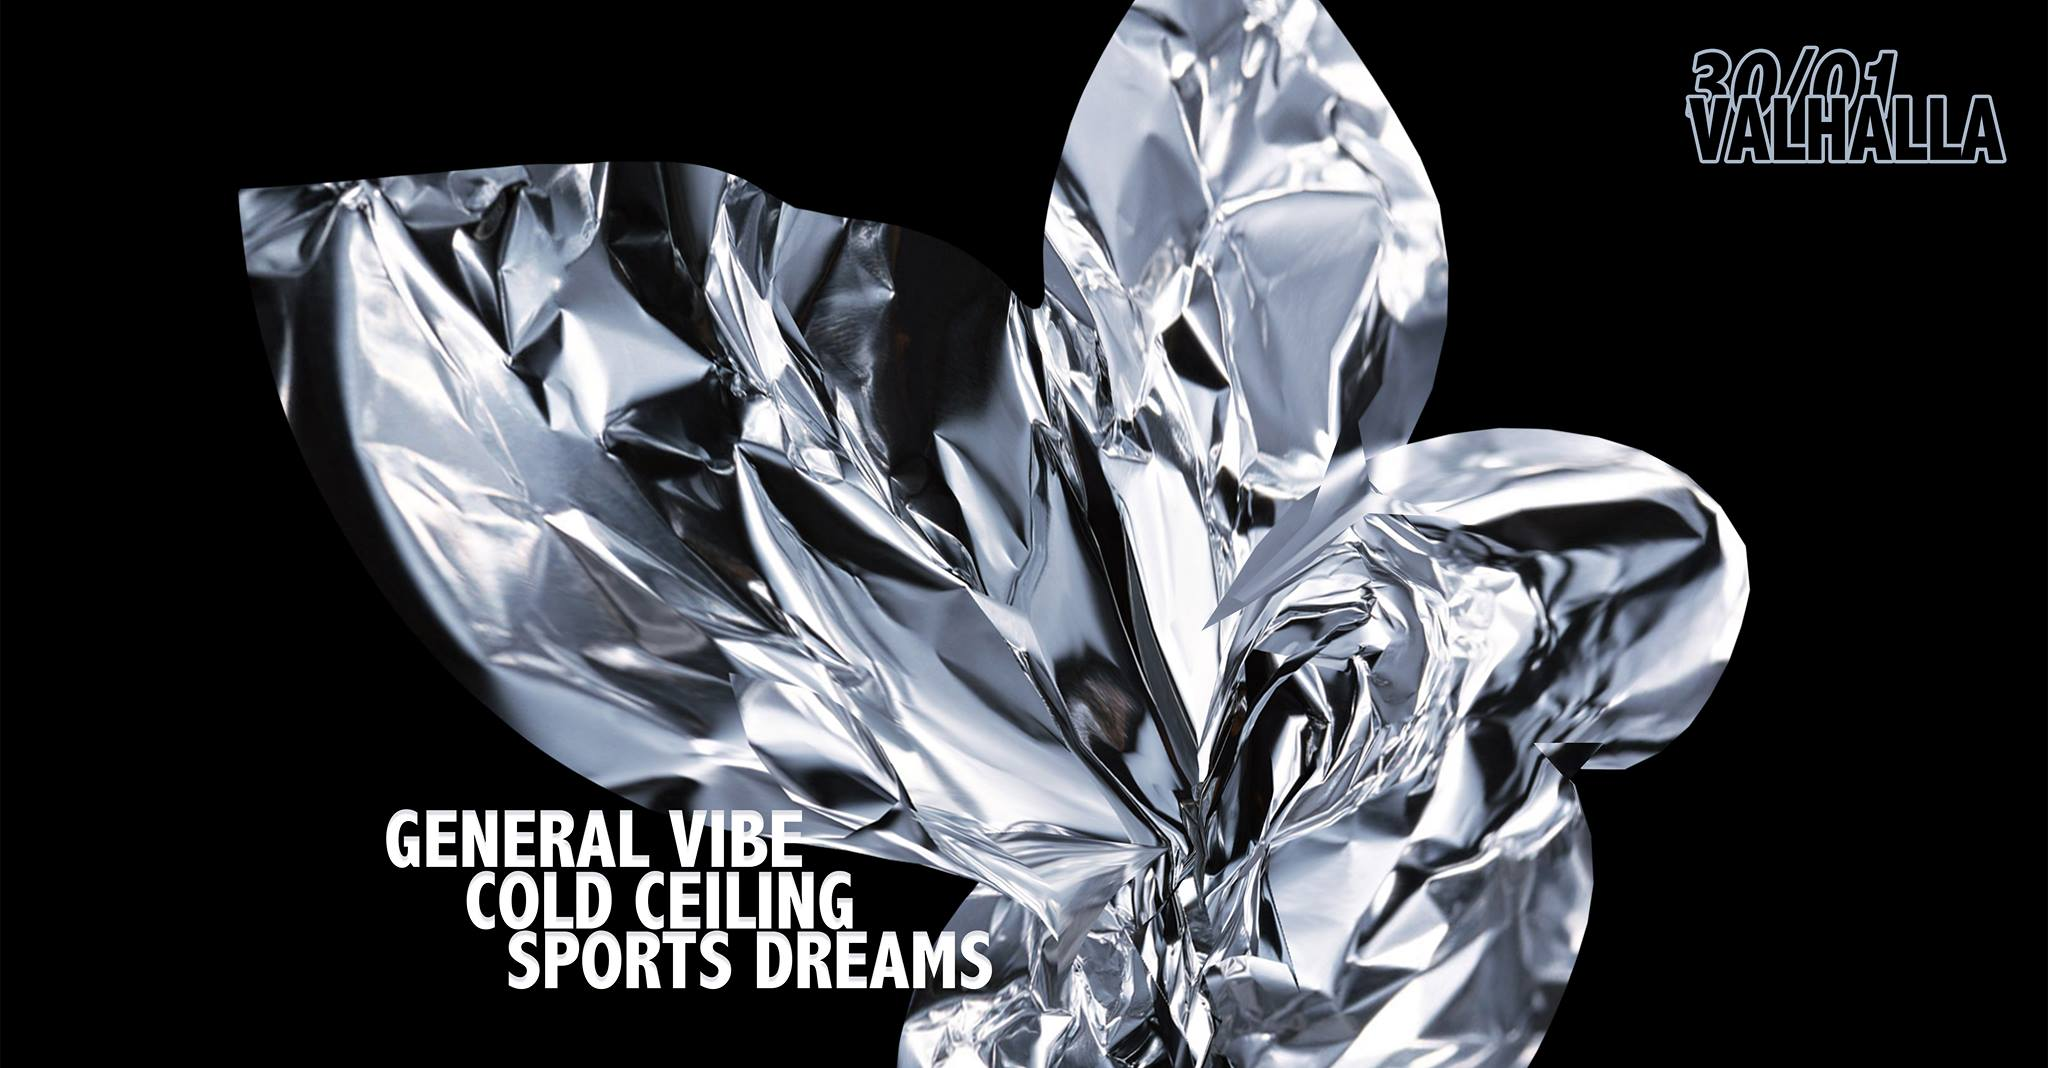 General Vibe, Cold Ceiling, Sports Dreams